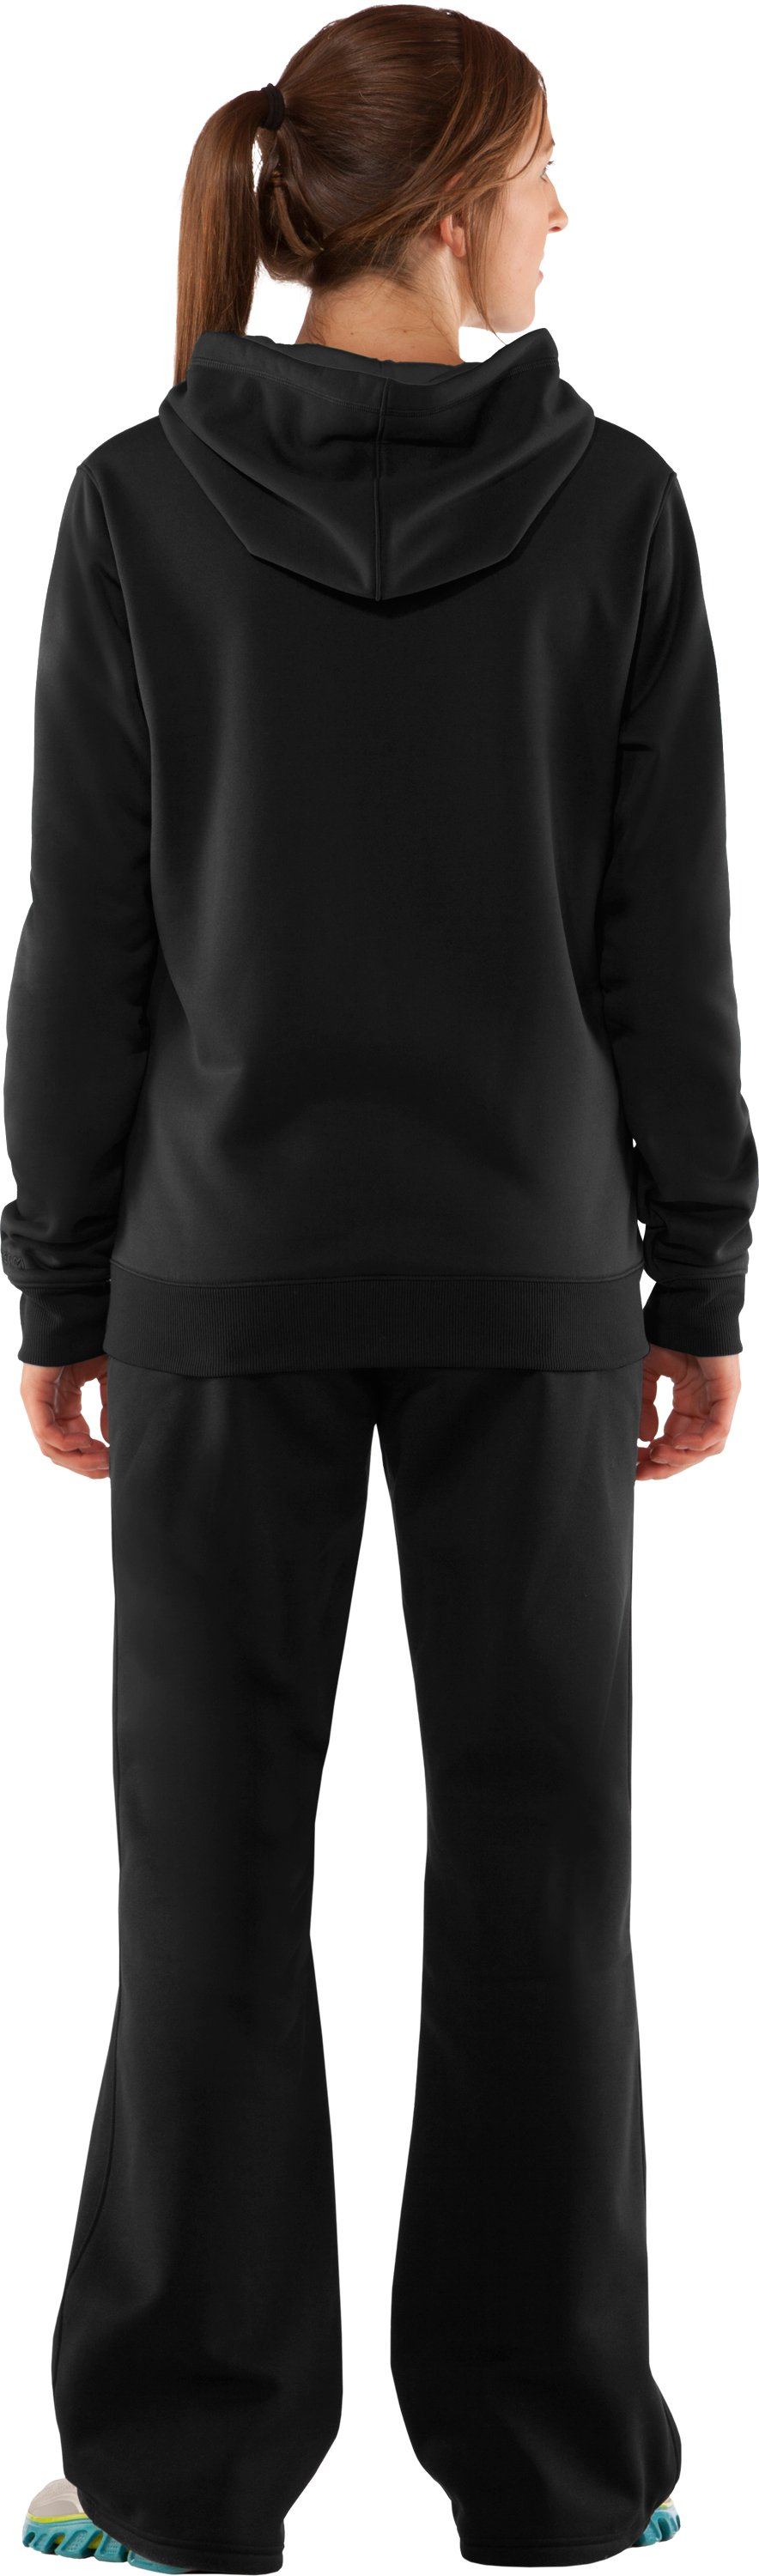 Women's  UA Storm Tackle Twill Hoodie, Black